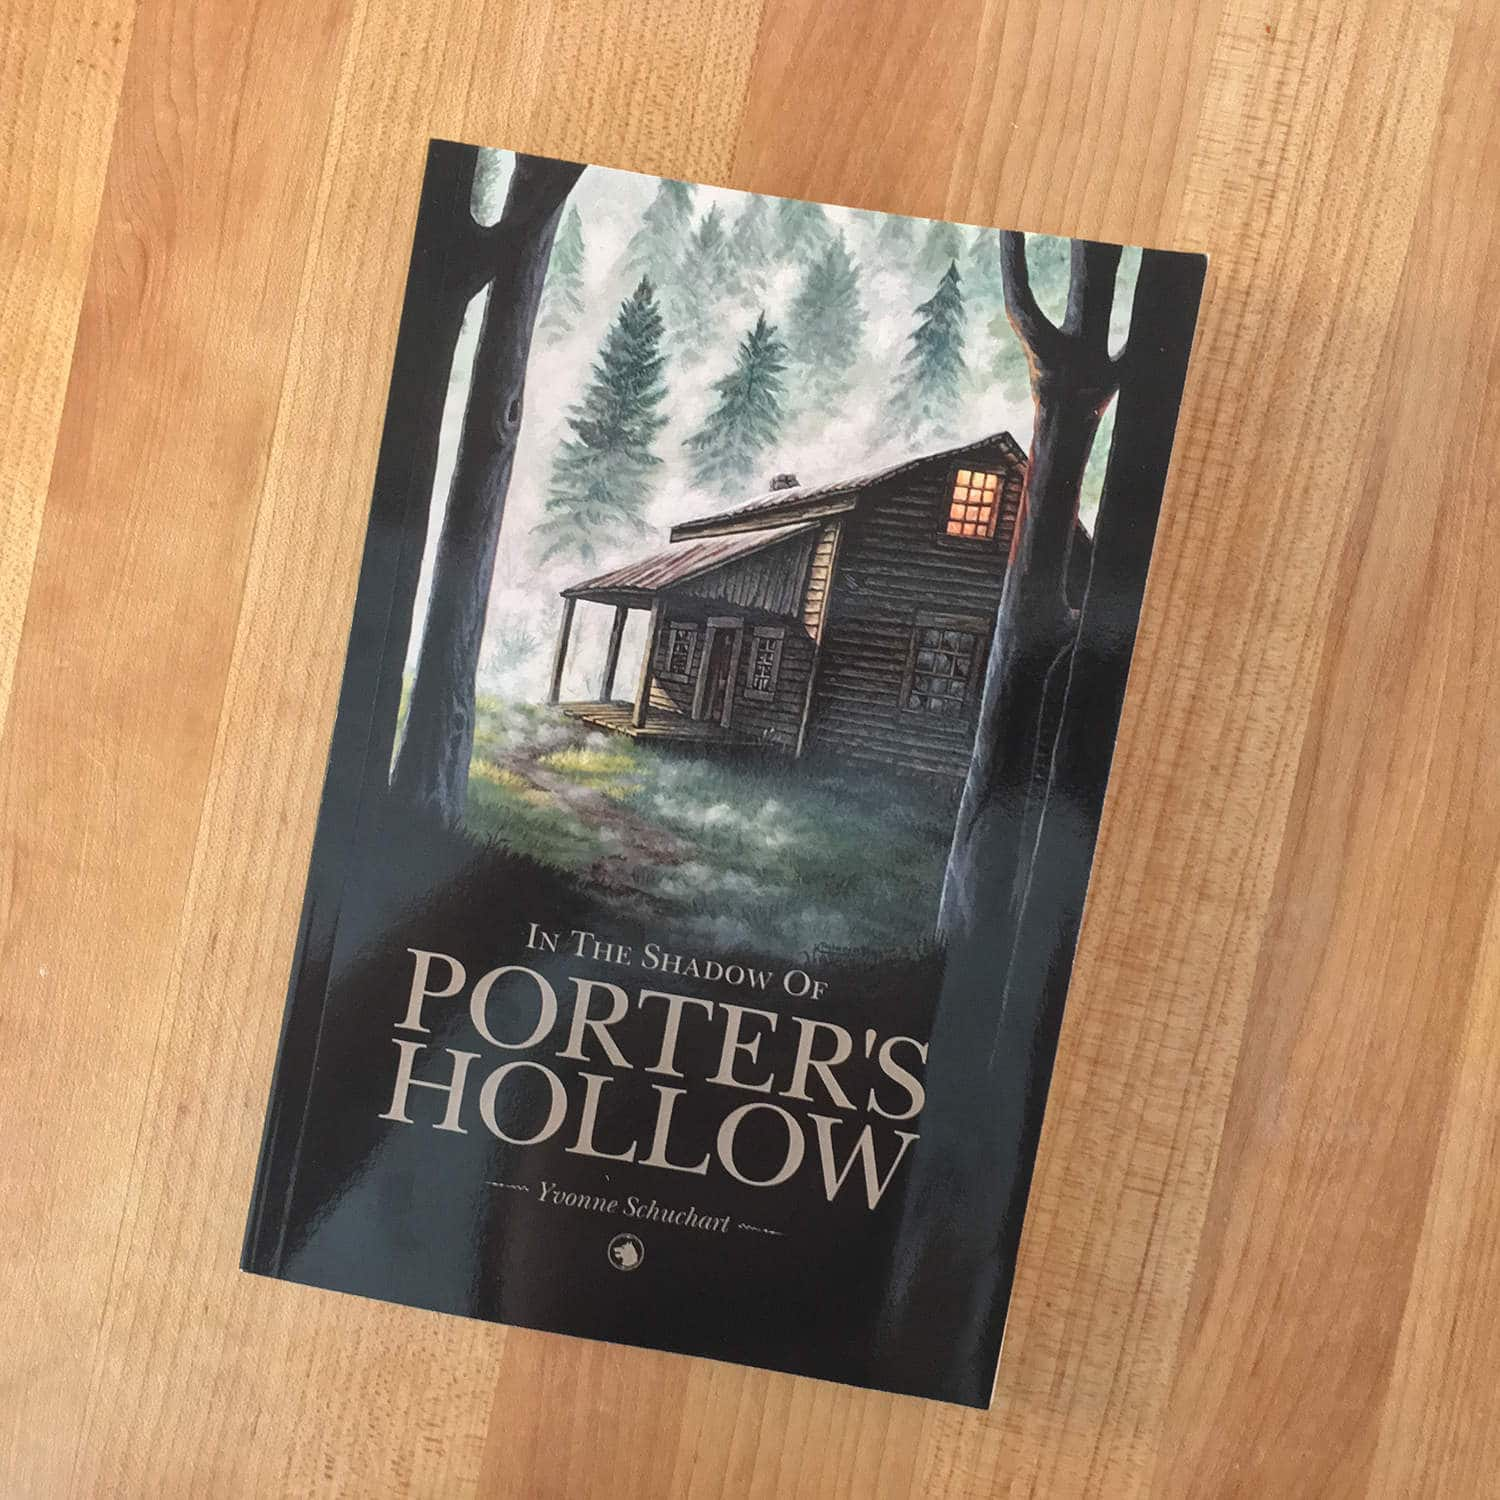 In the Shadow of Porter's Hollow Paperback Book - Cover Art Illustrator